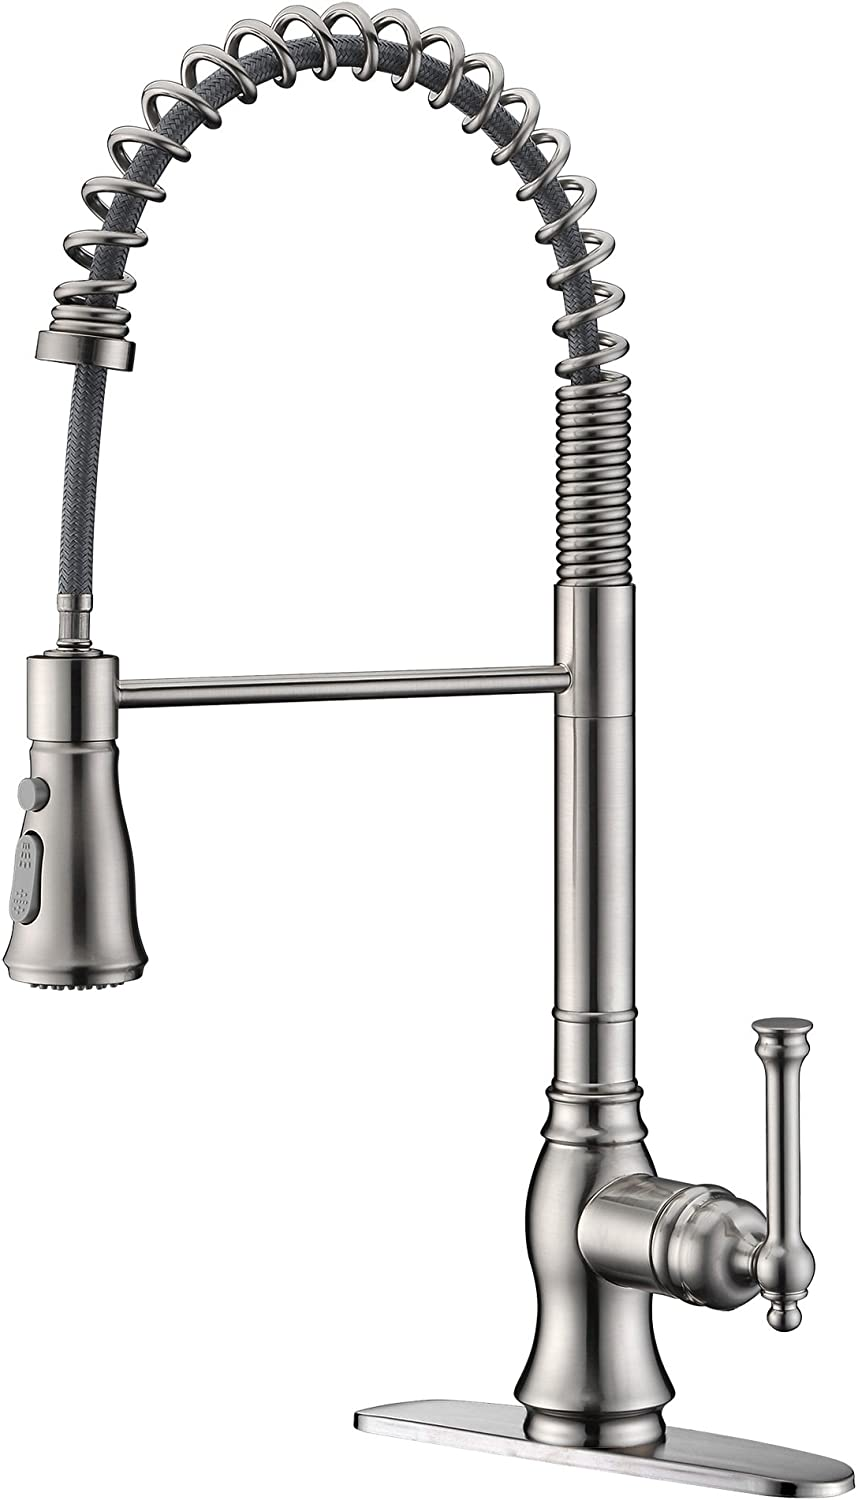 Kitchen Faucet, UEKPOE High Arc Commercial Single Handle Sink Faucet 360 Degree Swivel Spout Brushed Nickel Kitchen Faucets with Pull Down Sprayer